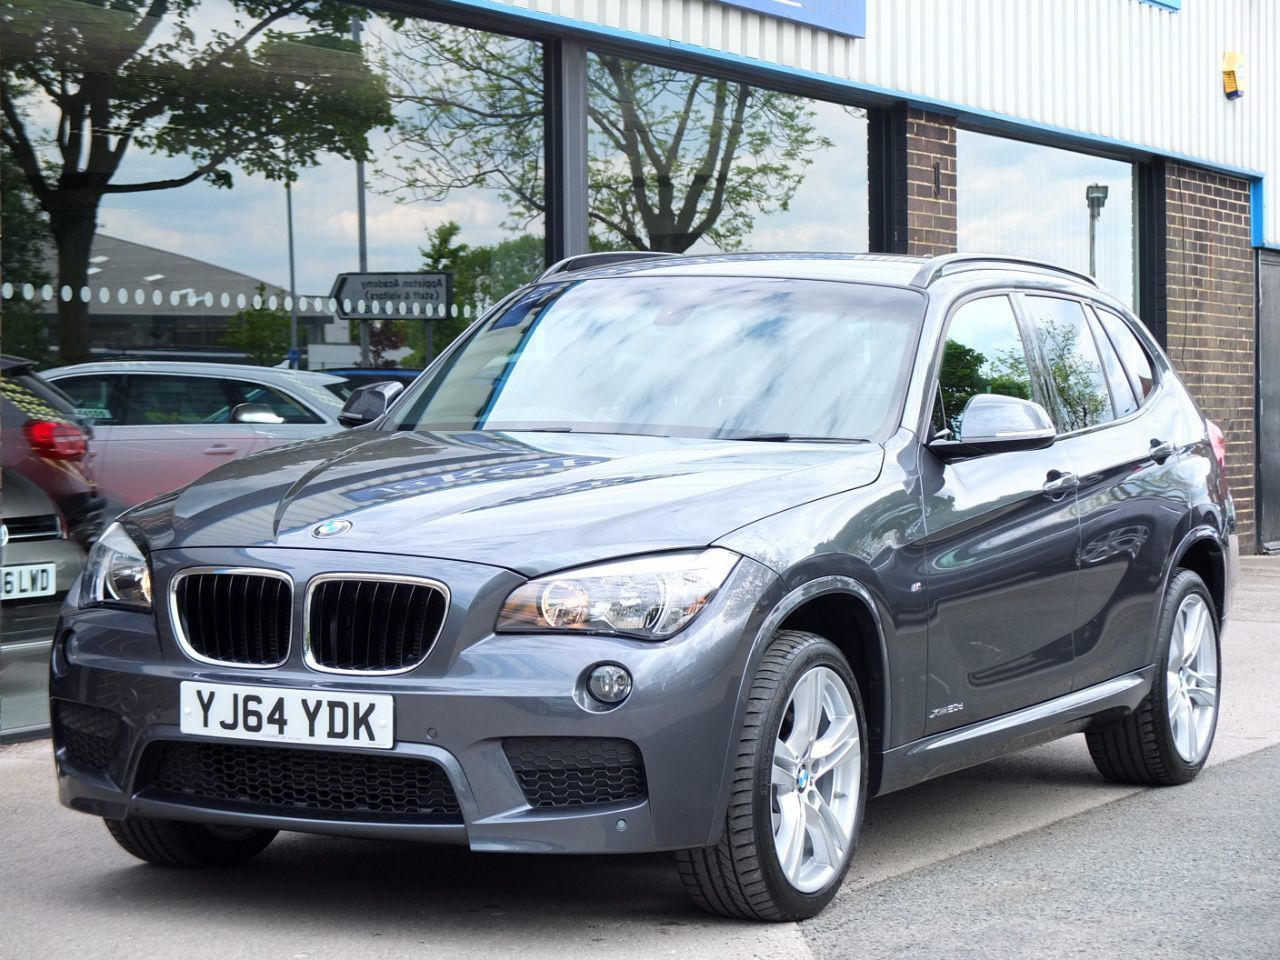 BMW X1 2.0 xDrive 20d M Sport Auto Estate Diesel Mineral Grey MetallicBMW X1 2.0 xDrive 20d M Sport Auto Estate Diesel Mineral Grey Metallic at fa Roper Ltd Bradford